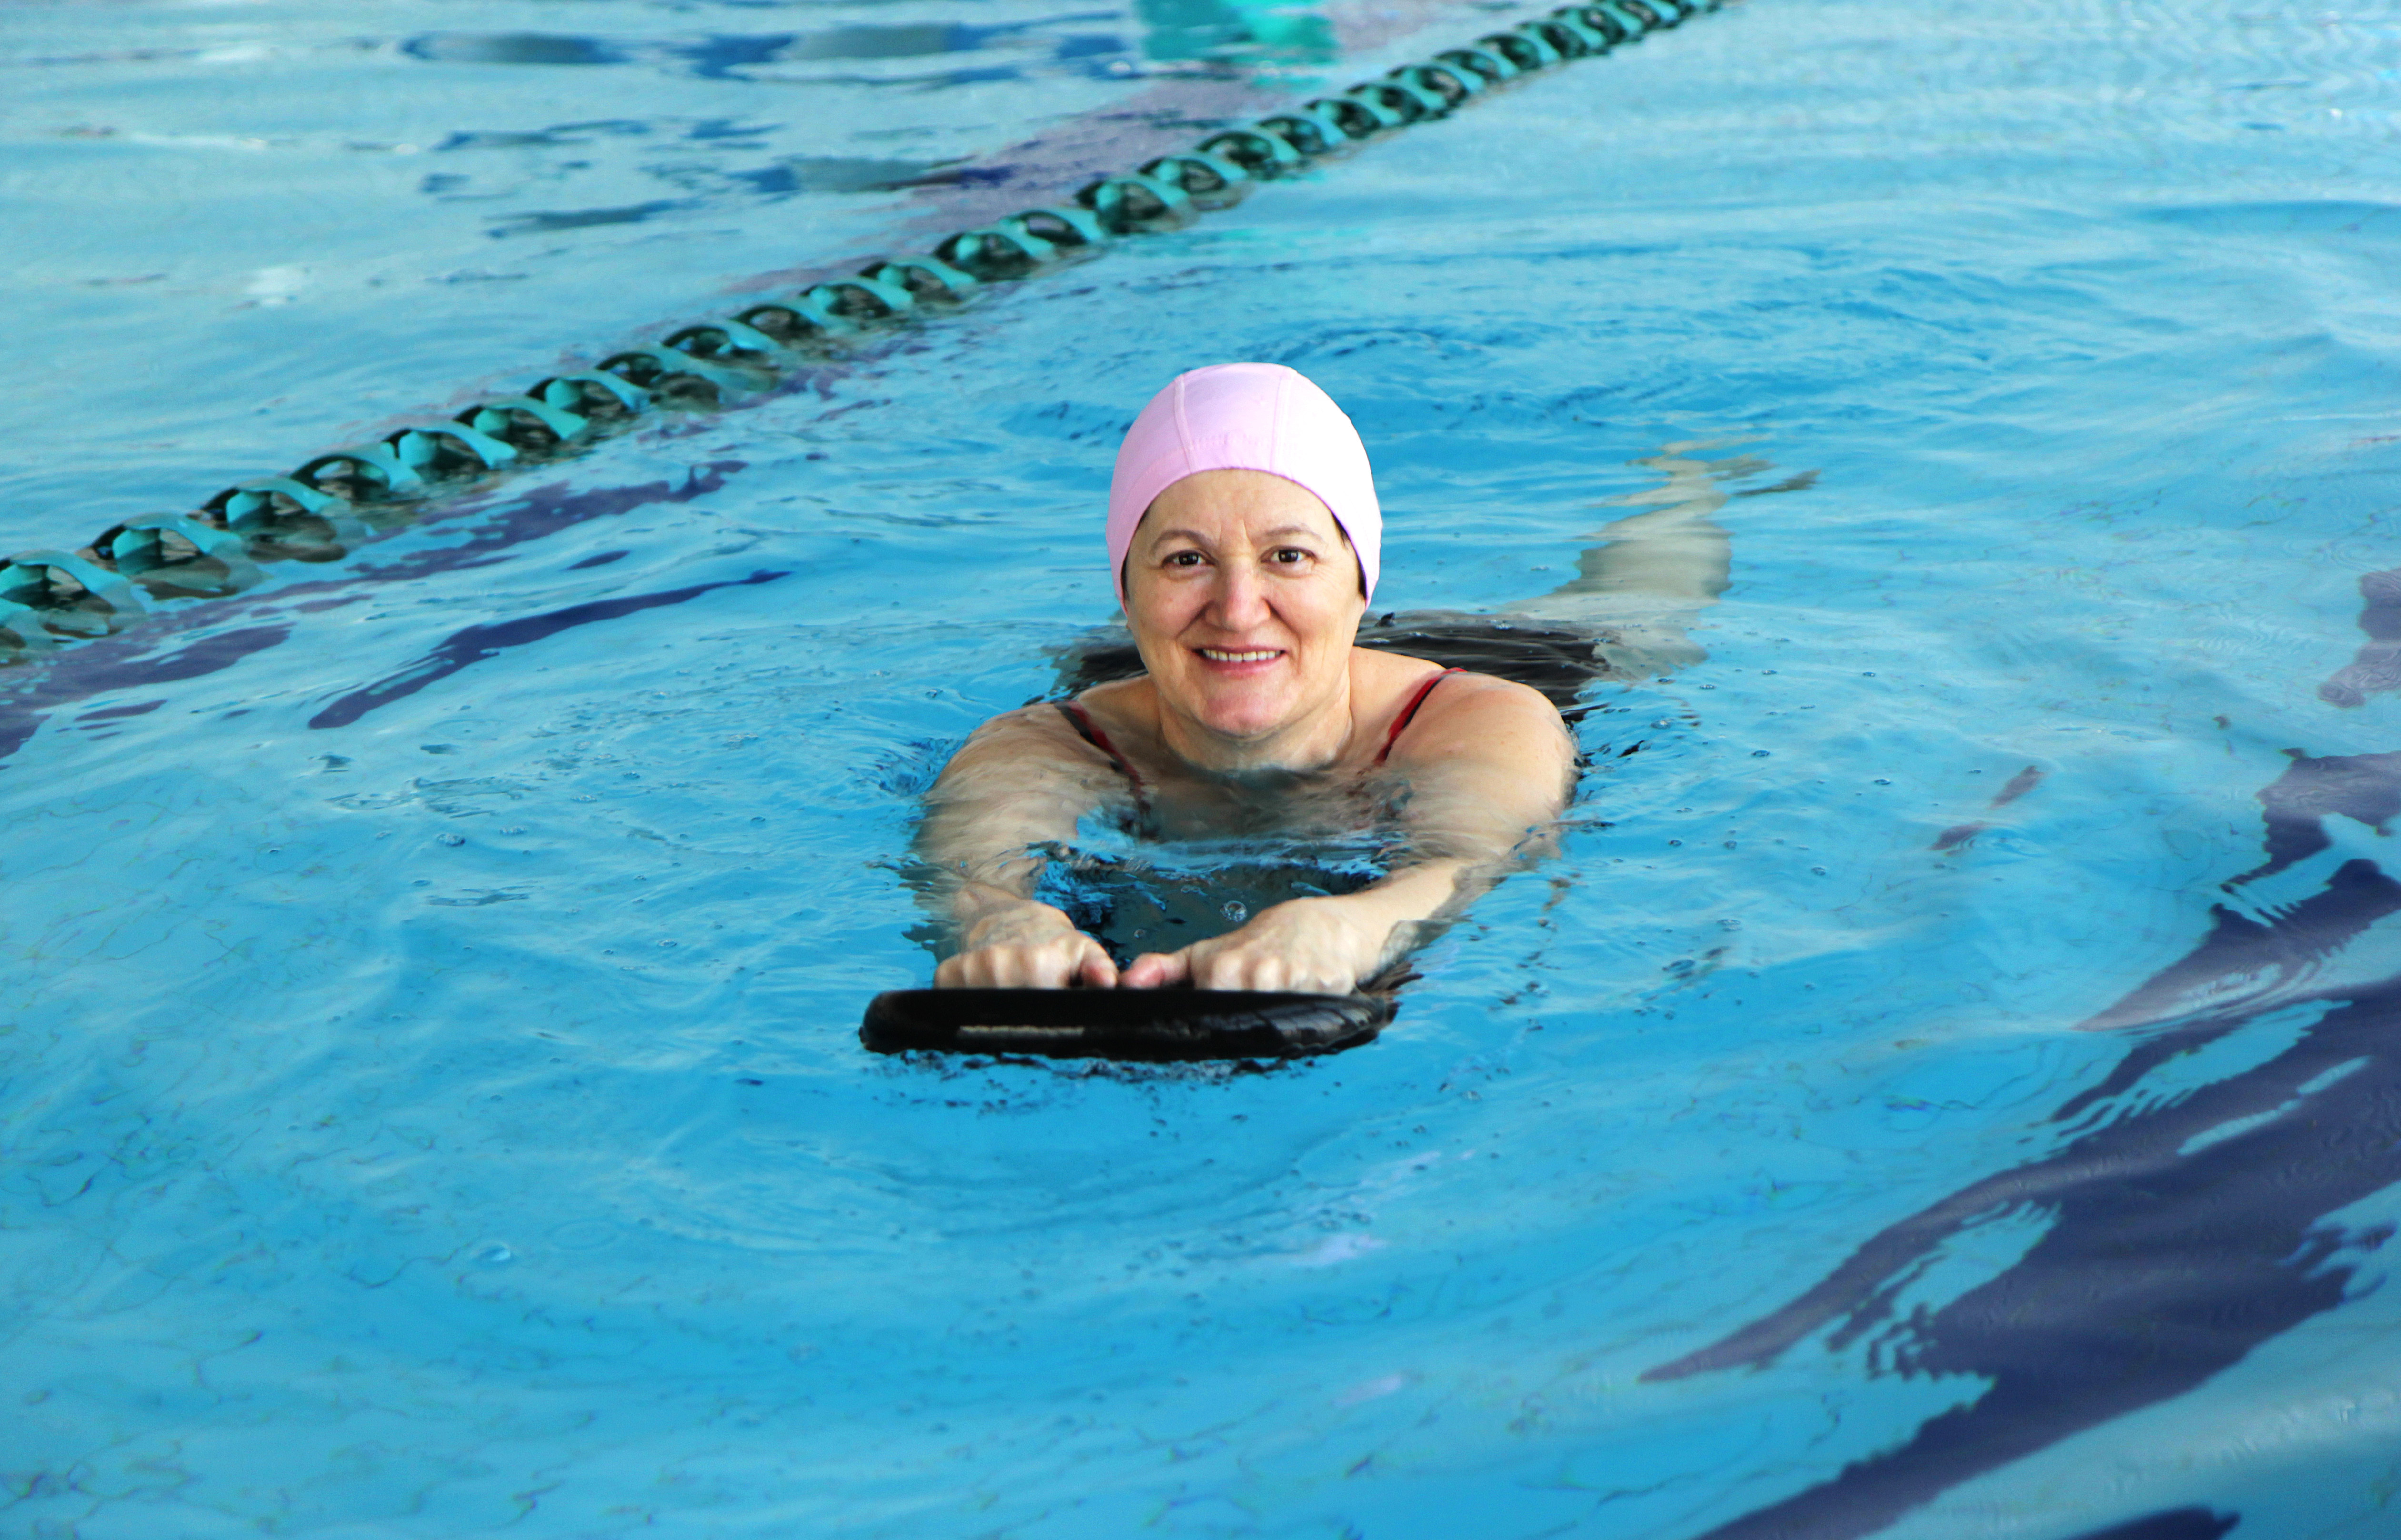 Overcoming Obstacles and Benefits of Swimming